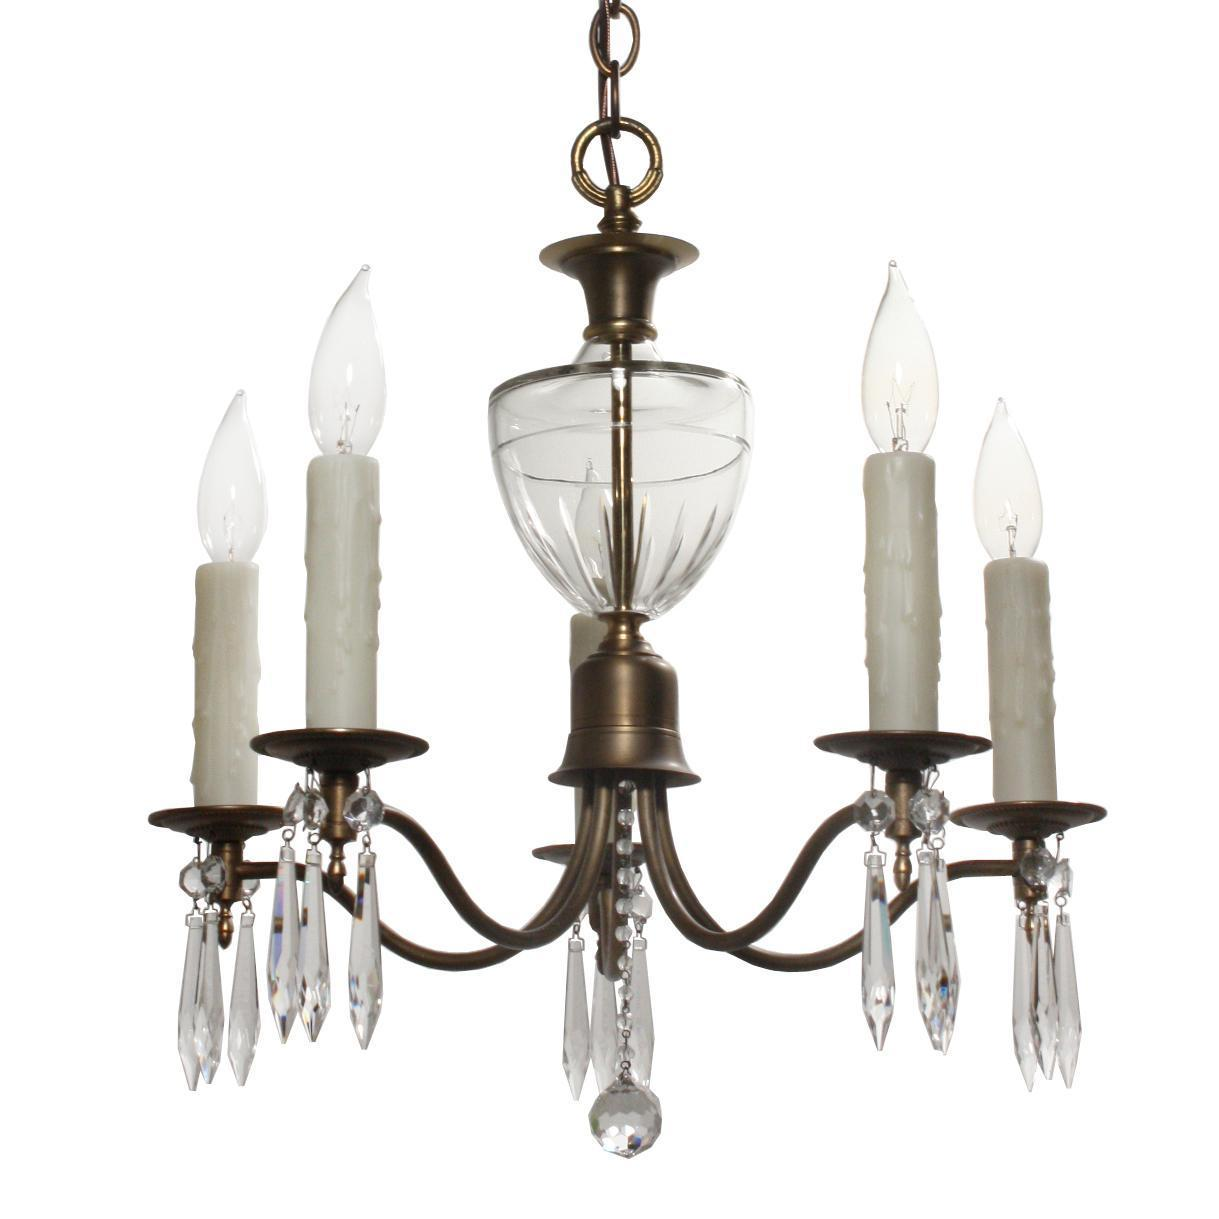 Beautiful Antique Brass and Glass Chandelier with Prisms, c.1910